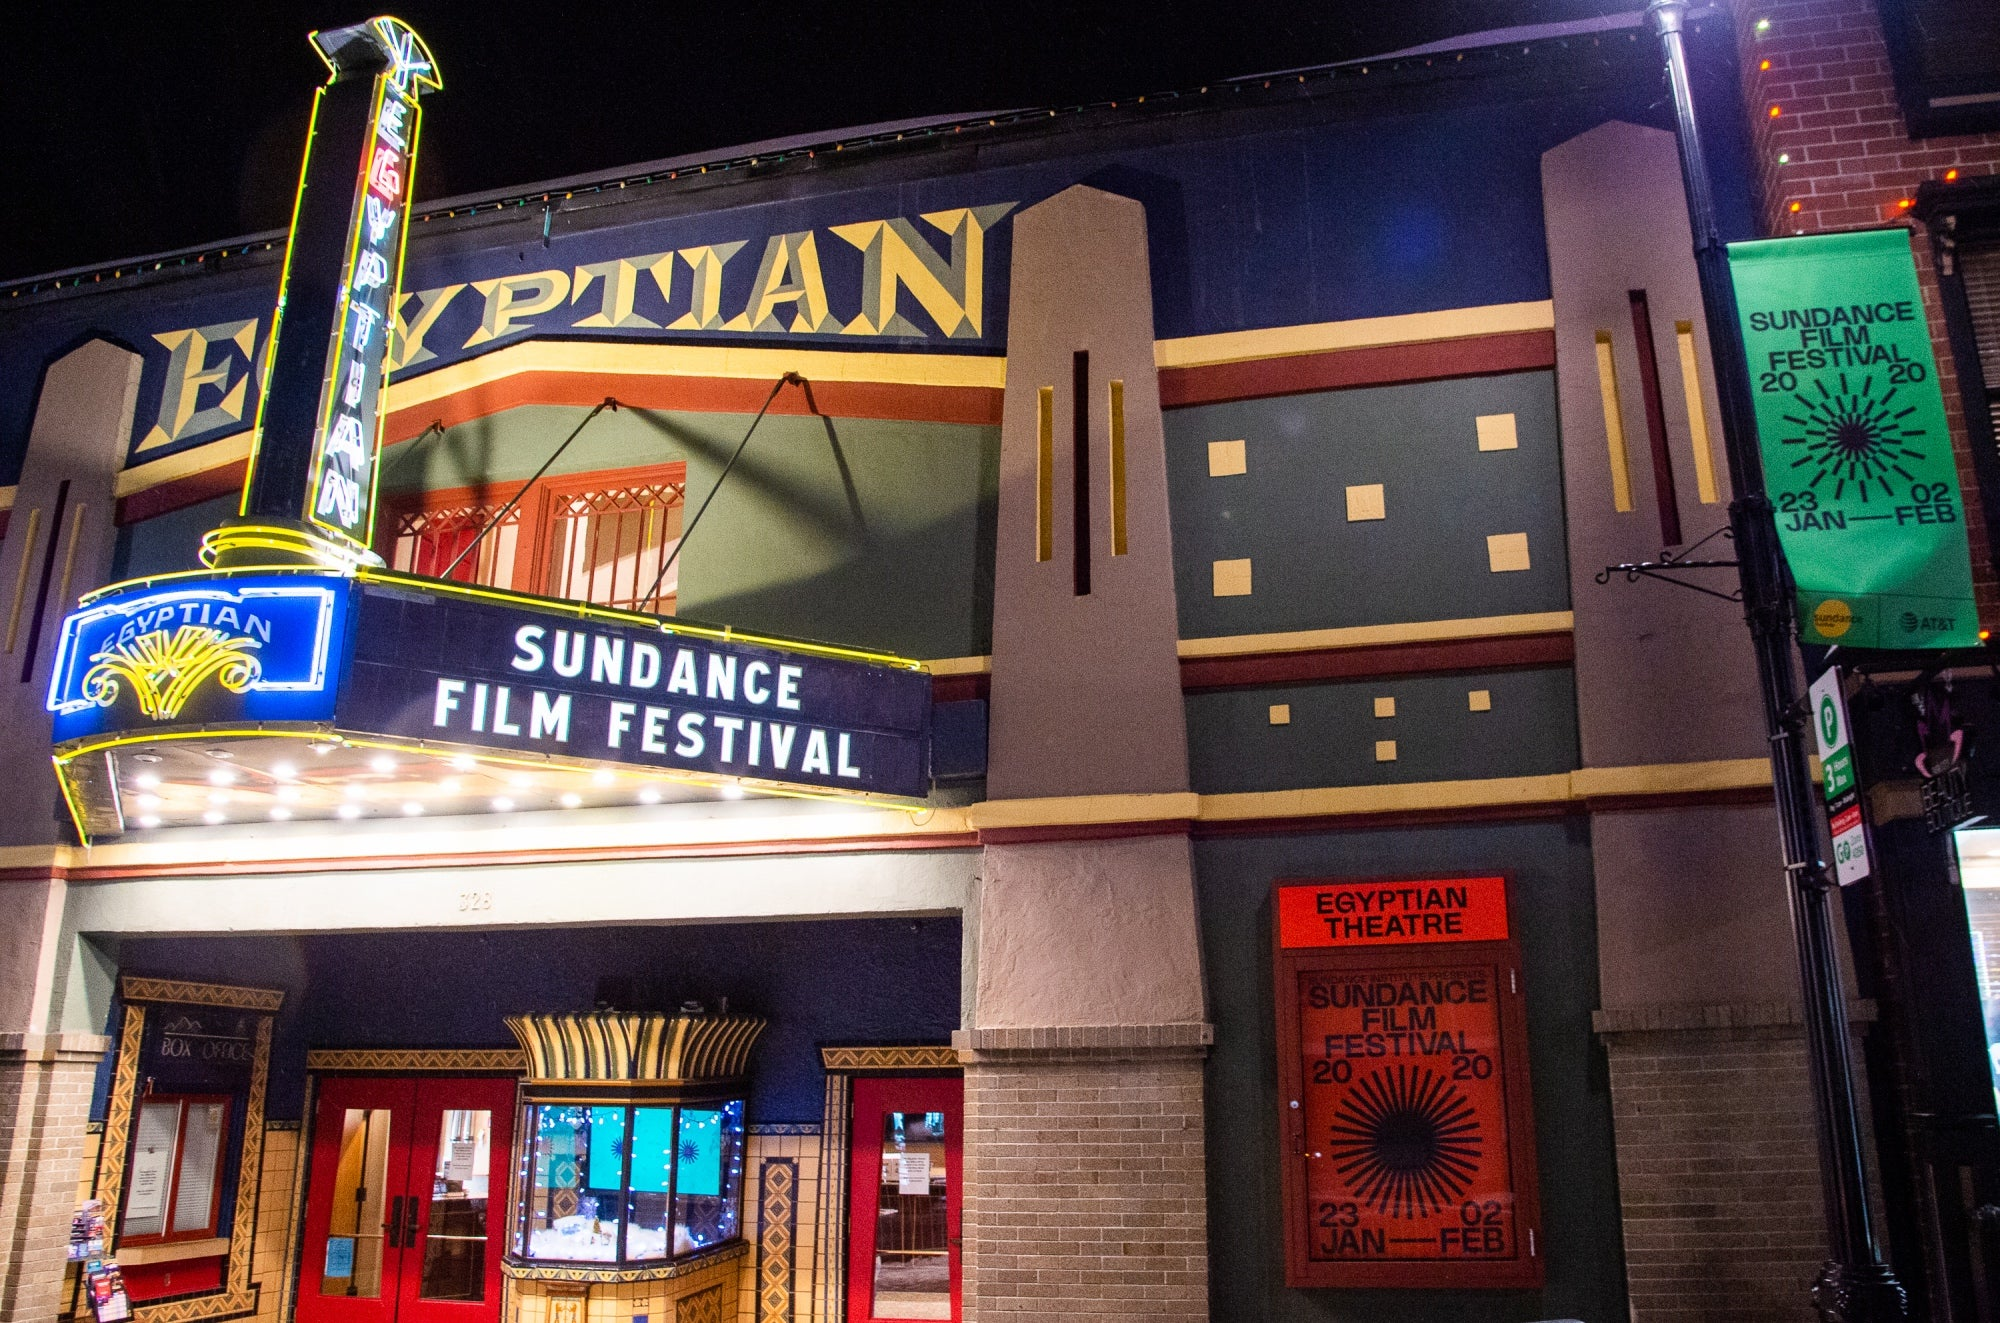 Egyprtian Thetare in park City, Sudnance film festival 2020